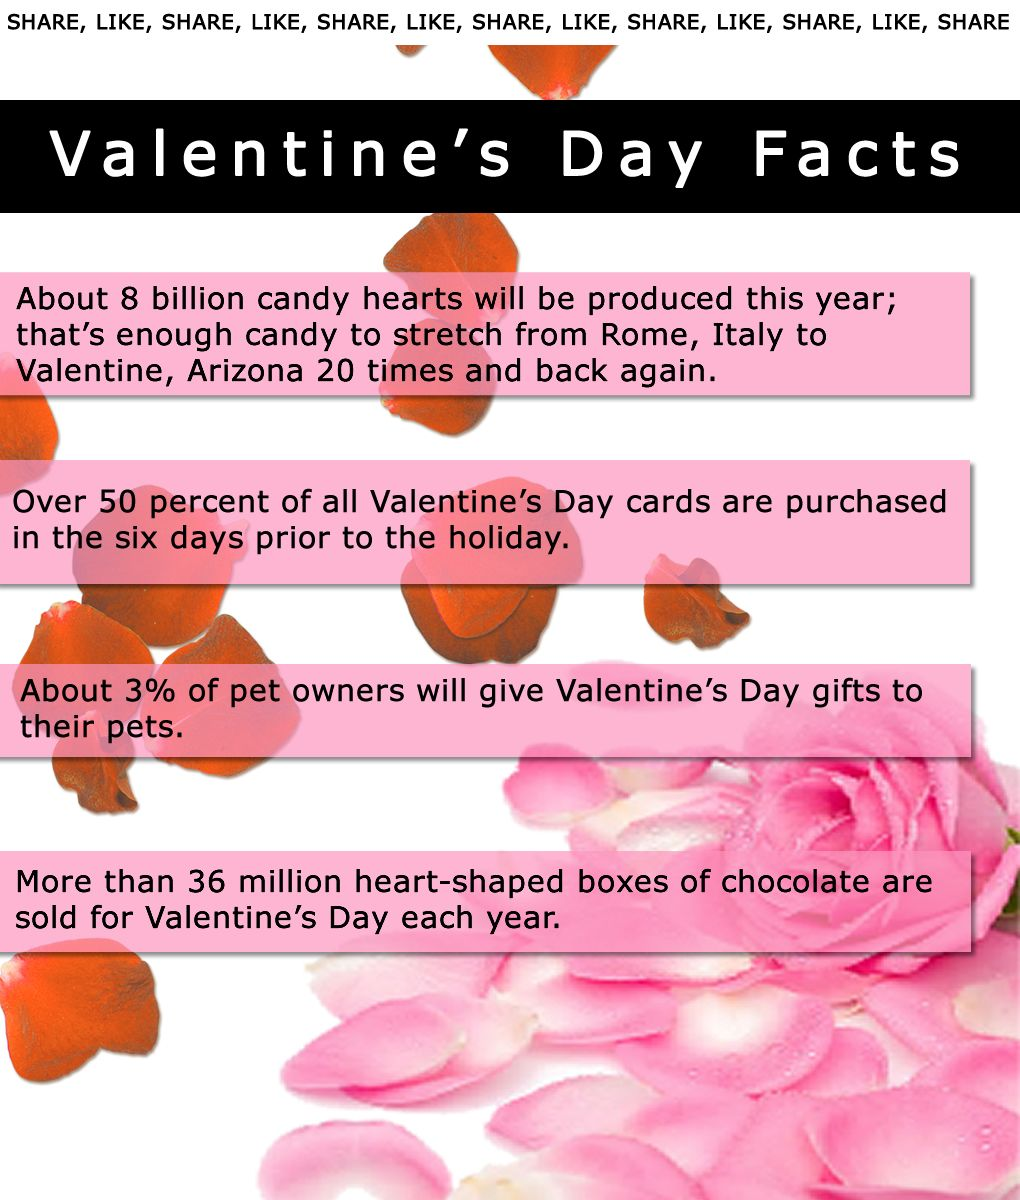 valentine's day facts powerpoint